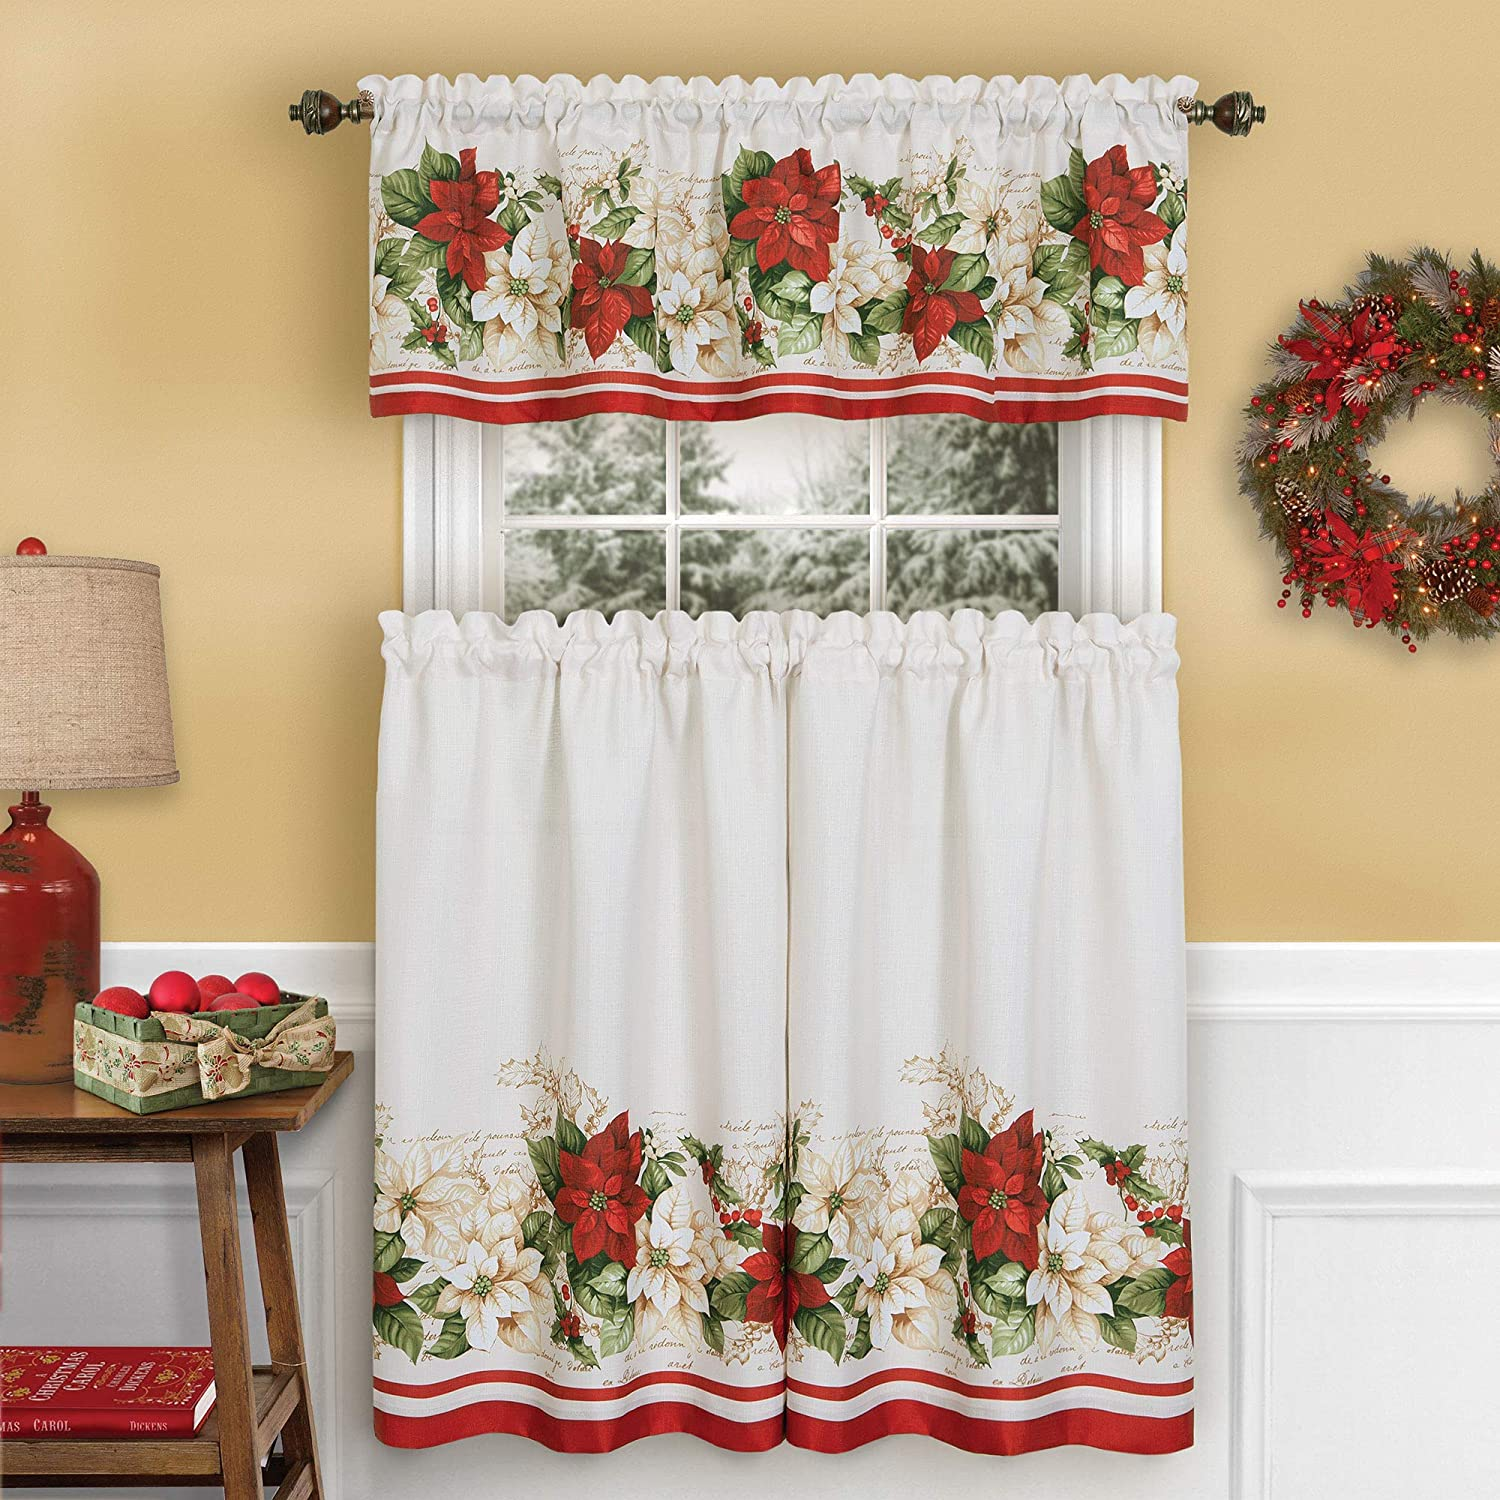 Elrene Home Fashions Red and White Poinsettia Holiday Christmas Kitchen/Café and Bath Tiers and Valance, 3 Piece Set, 60